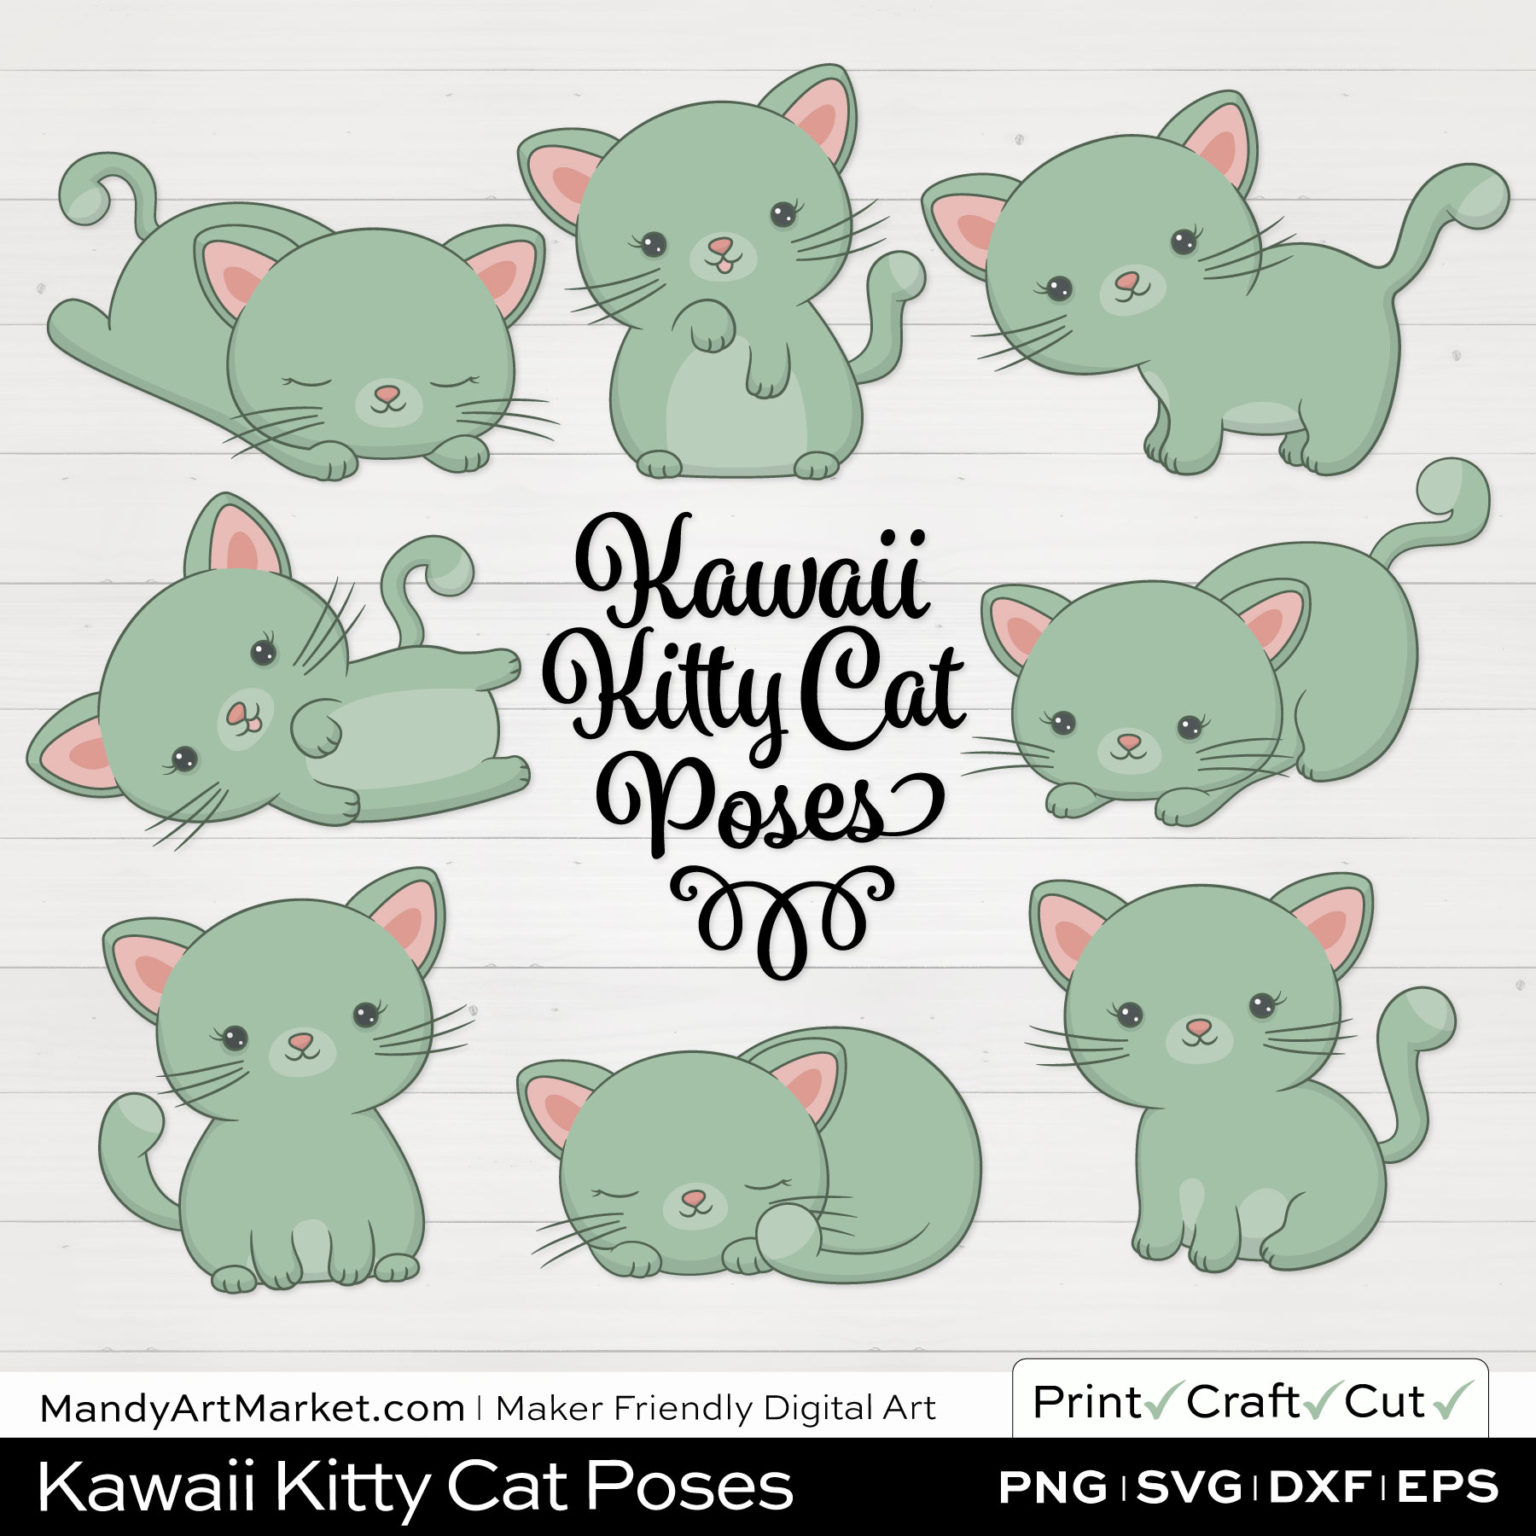 Sage Green Kawaii Kitty Cat Poses Clipart on White Background